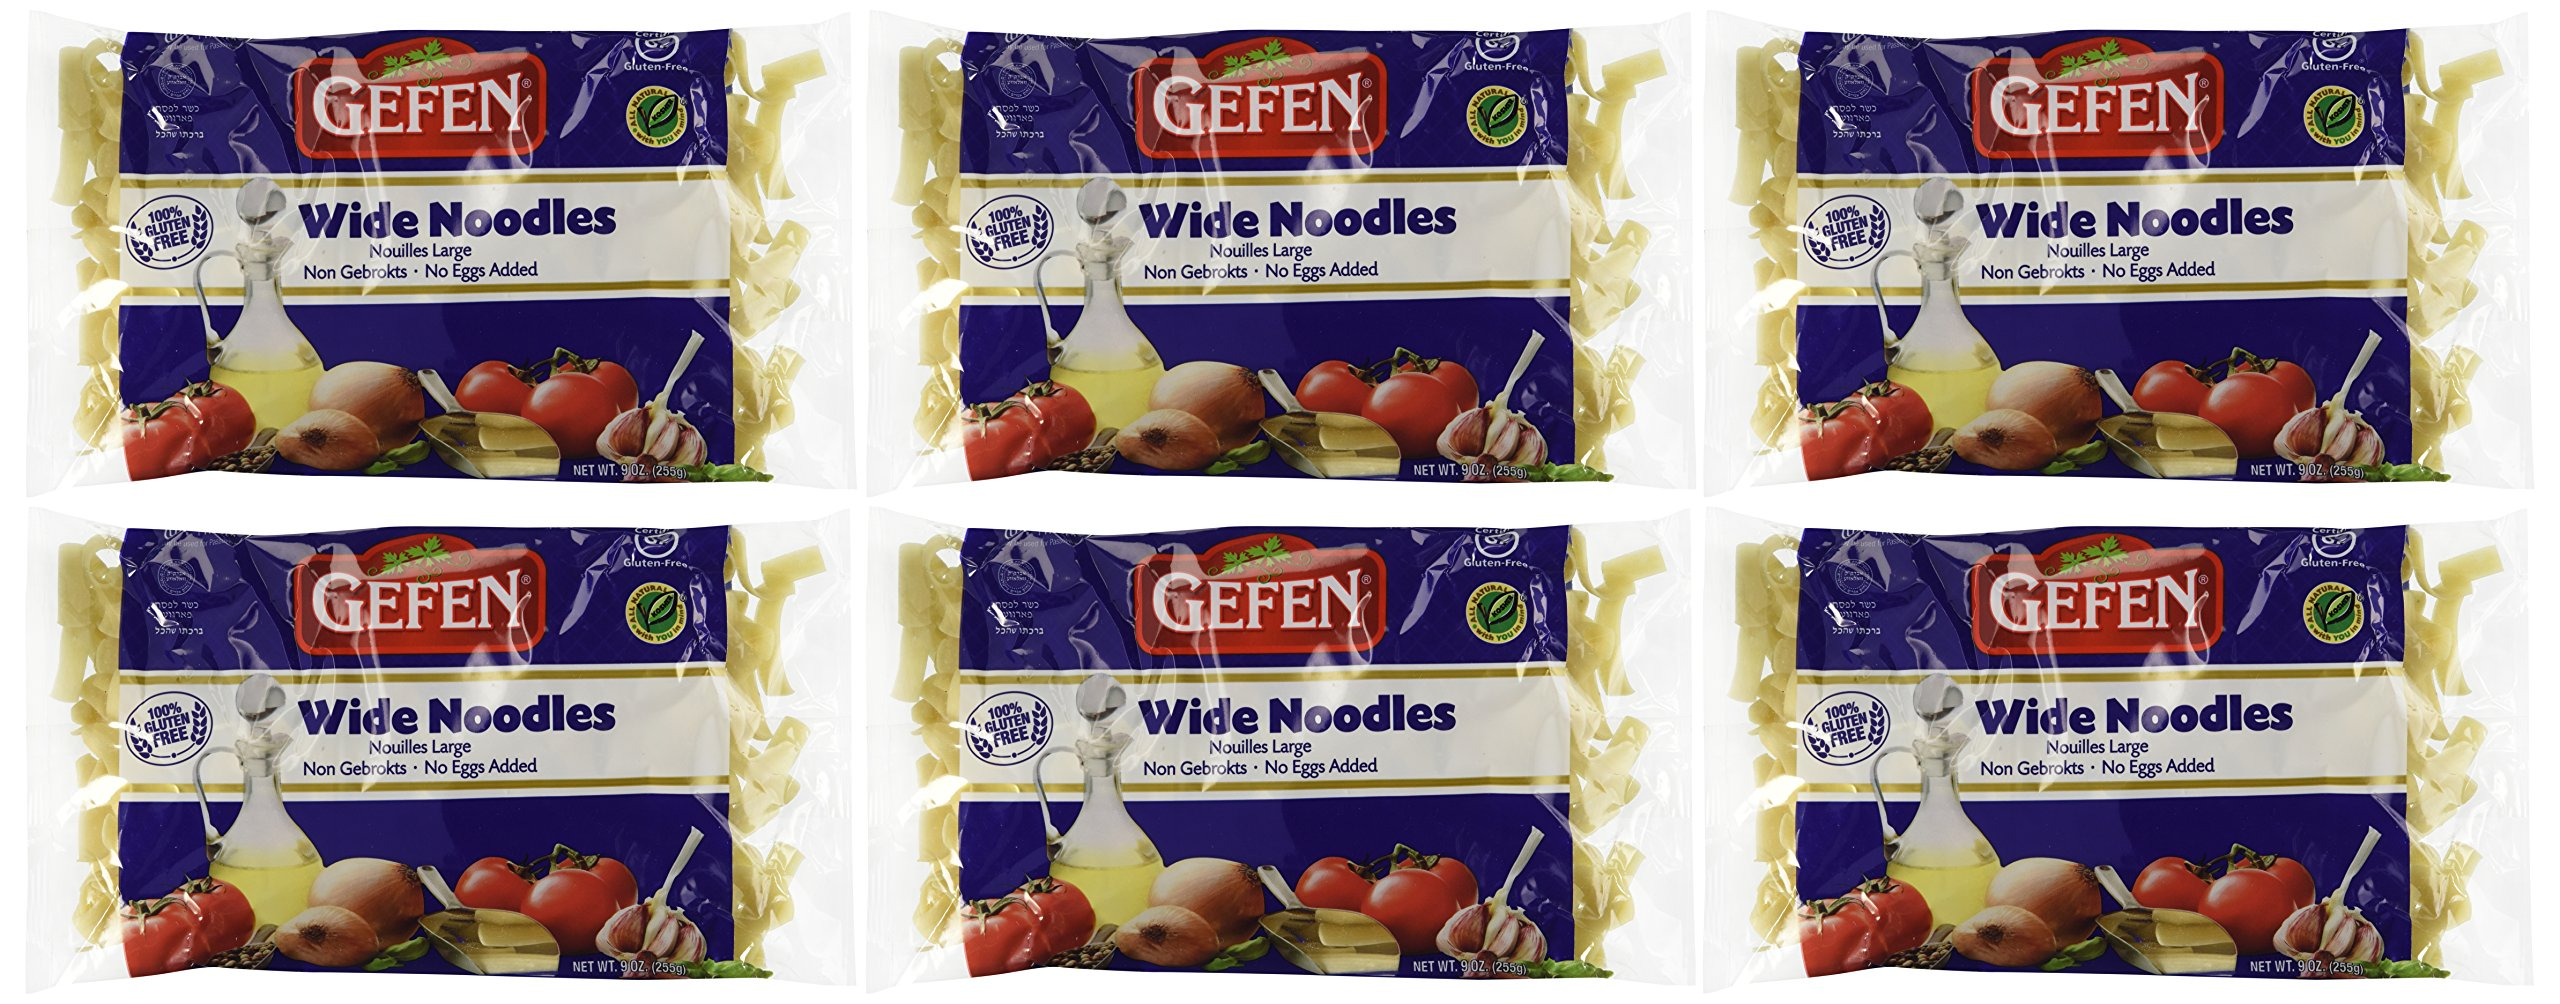 Gefen Cakes, Gefen Wide Noodles, Gluten Free, 9-Ounce Units (Pack of 6) by Gefen